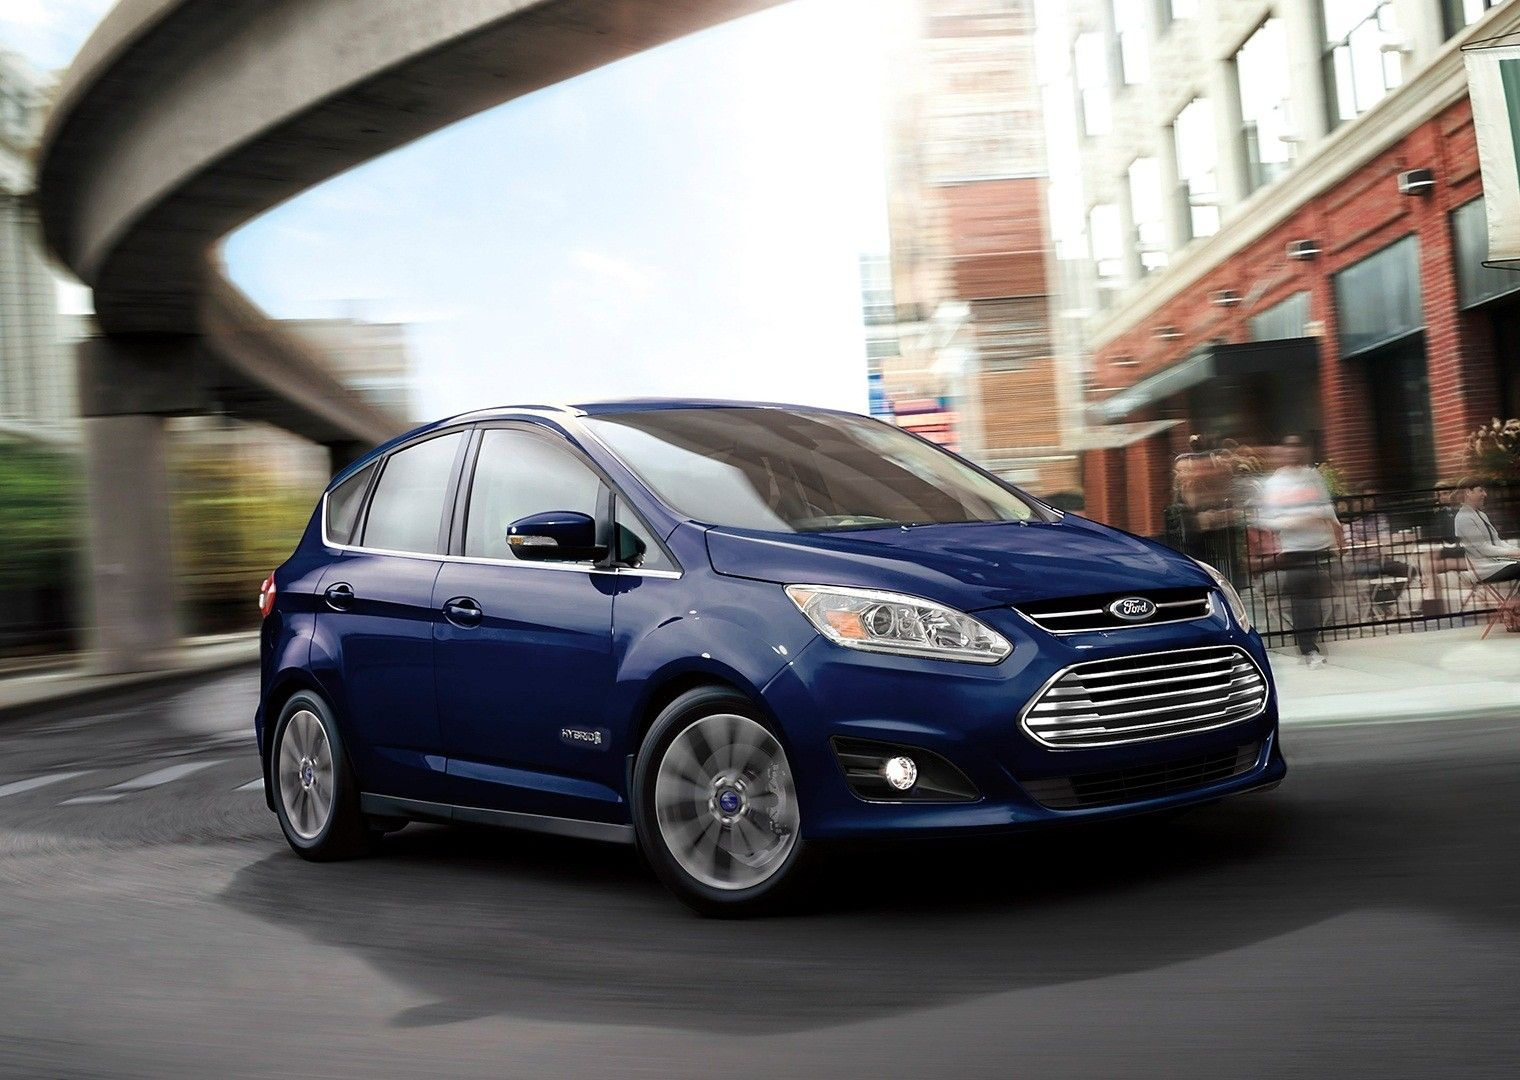 2019 Ford C Max Exterior And Interior Review Unique Cars Ford Gt 2019 Ford